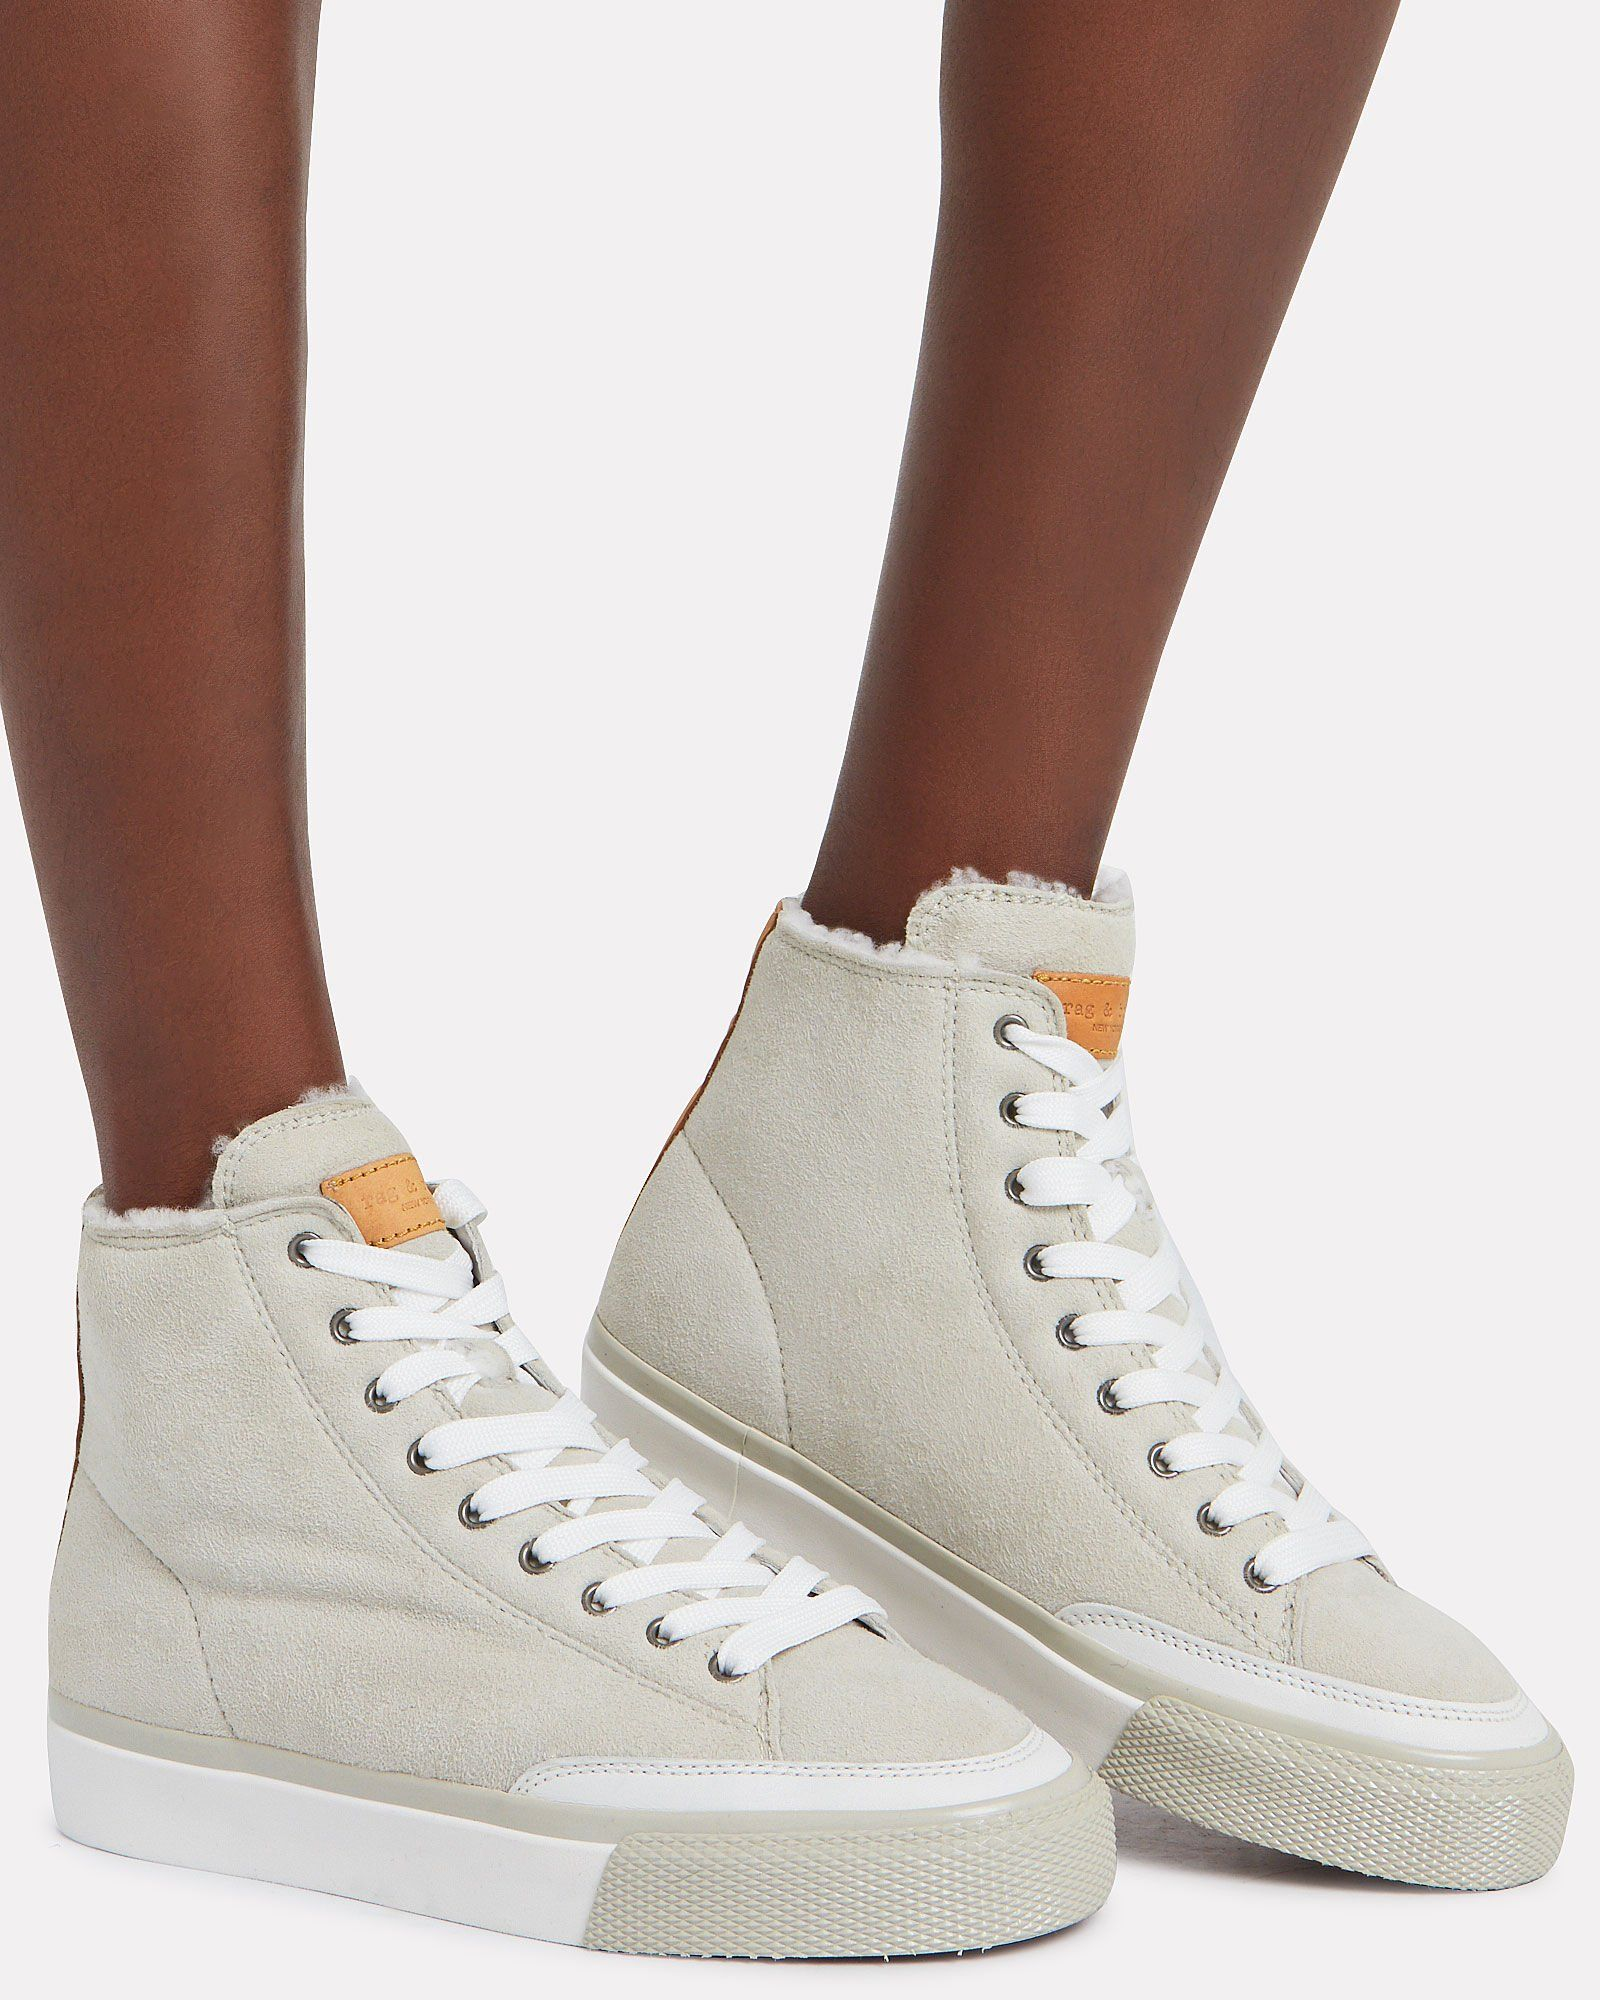 Rb Suede Shearling-Lined High-Tops